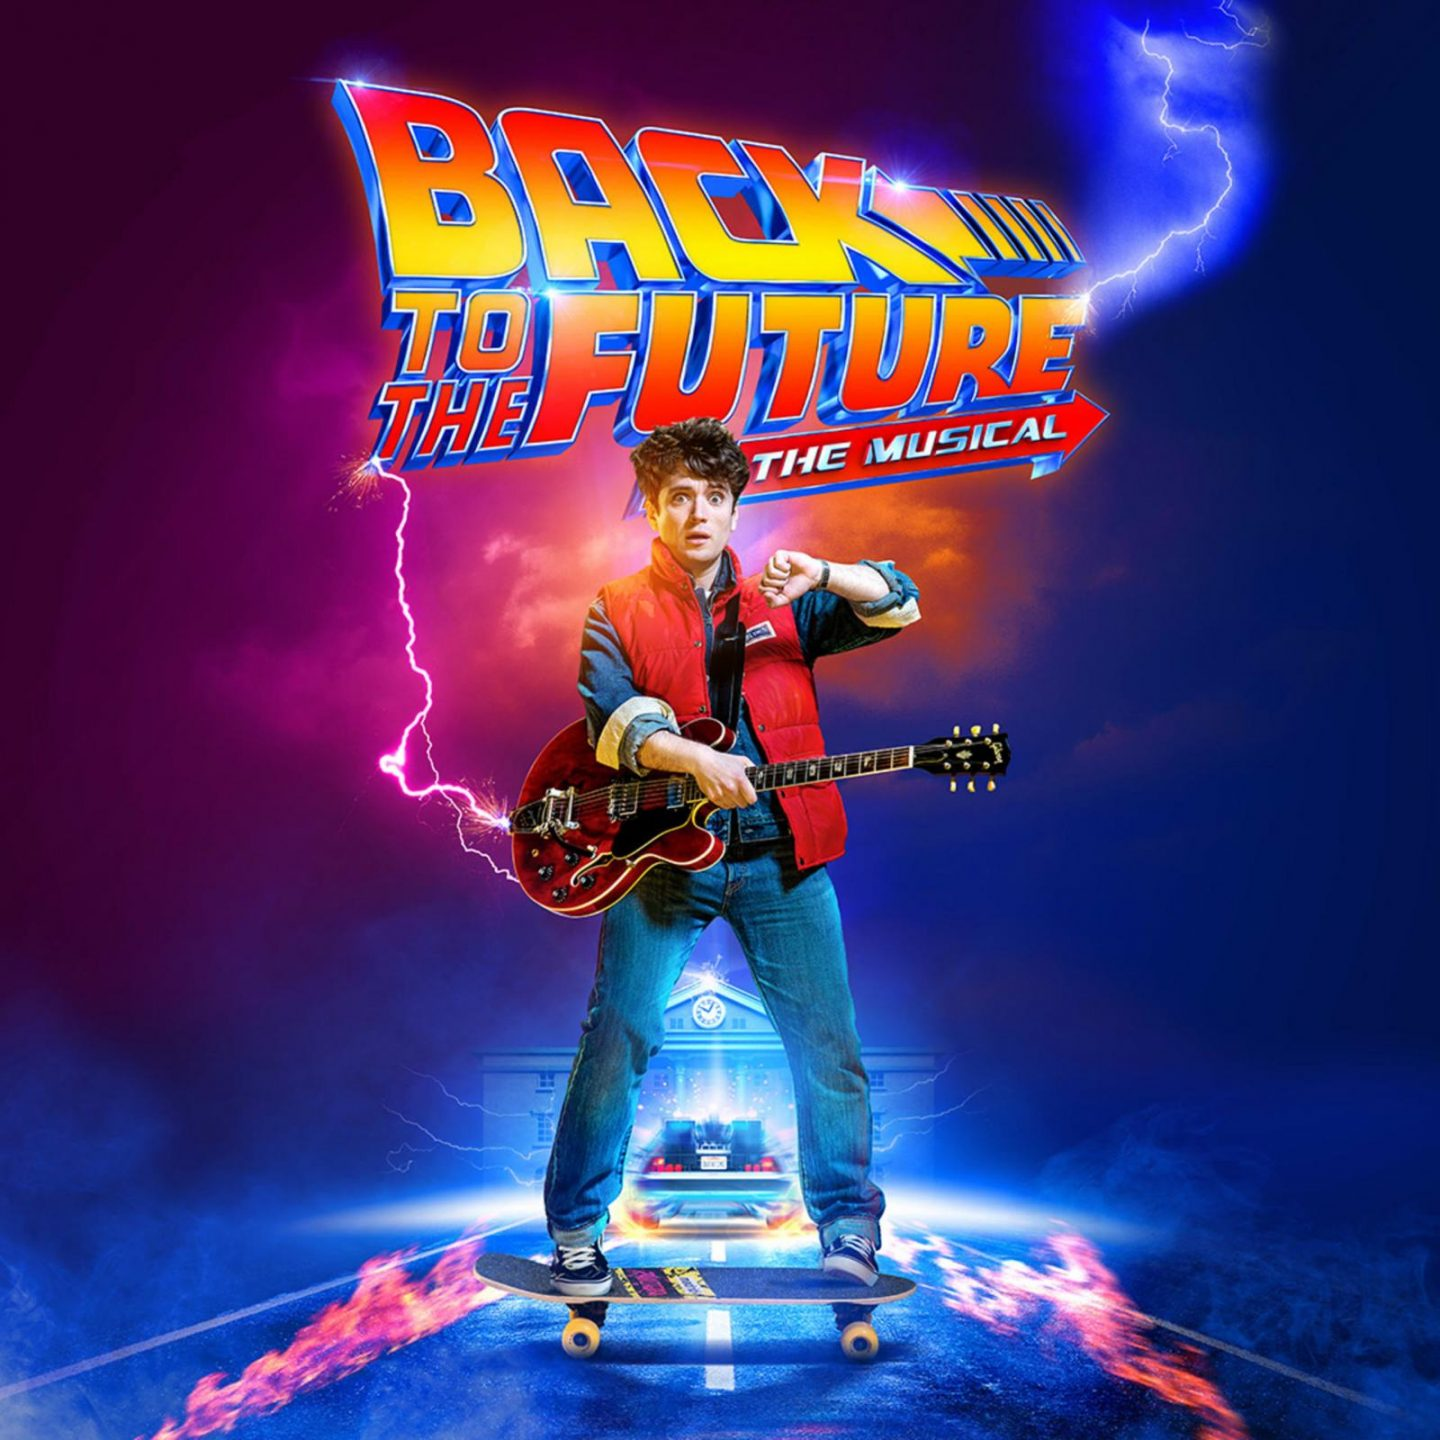 BacktotheFuturetheMusical_Title_1080x1080